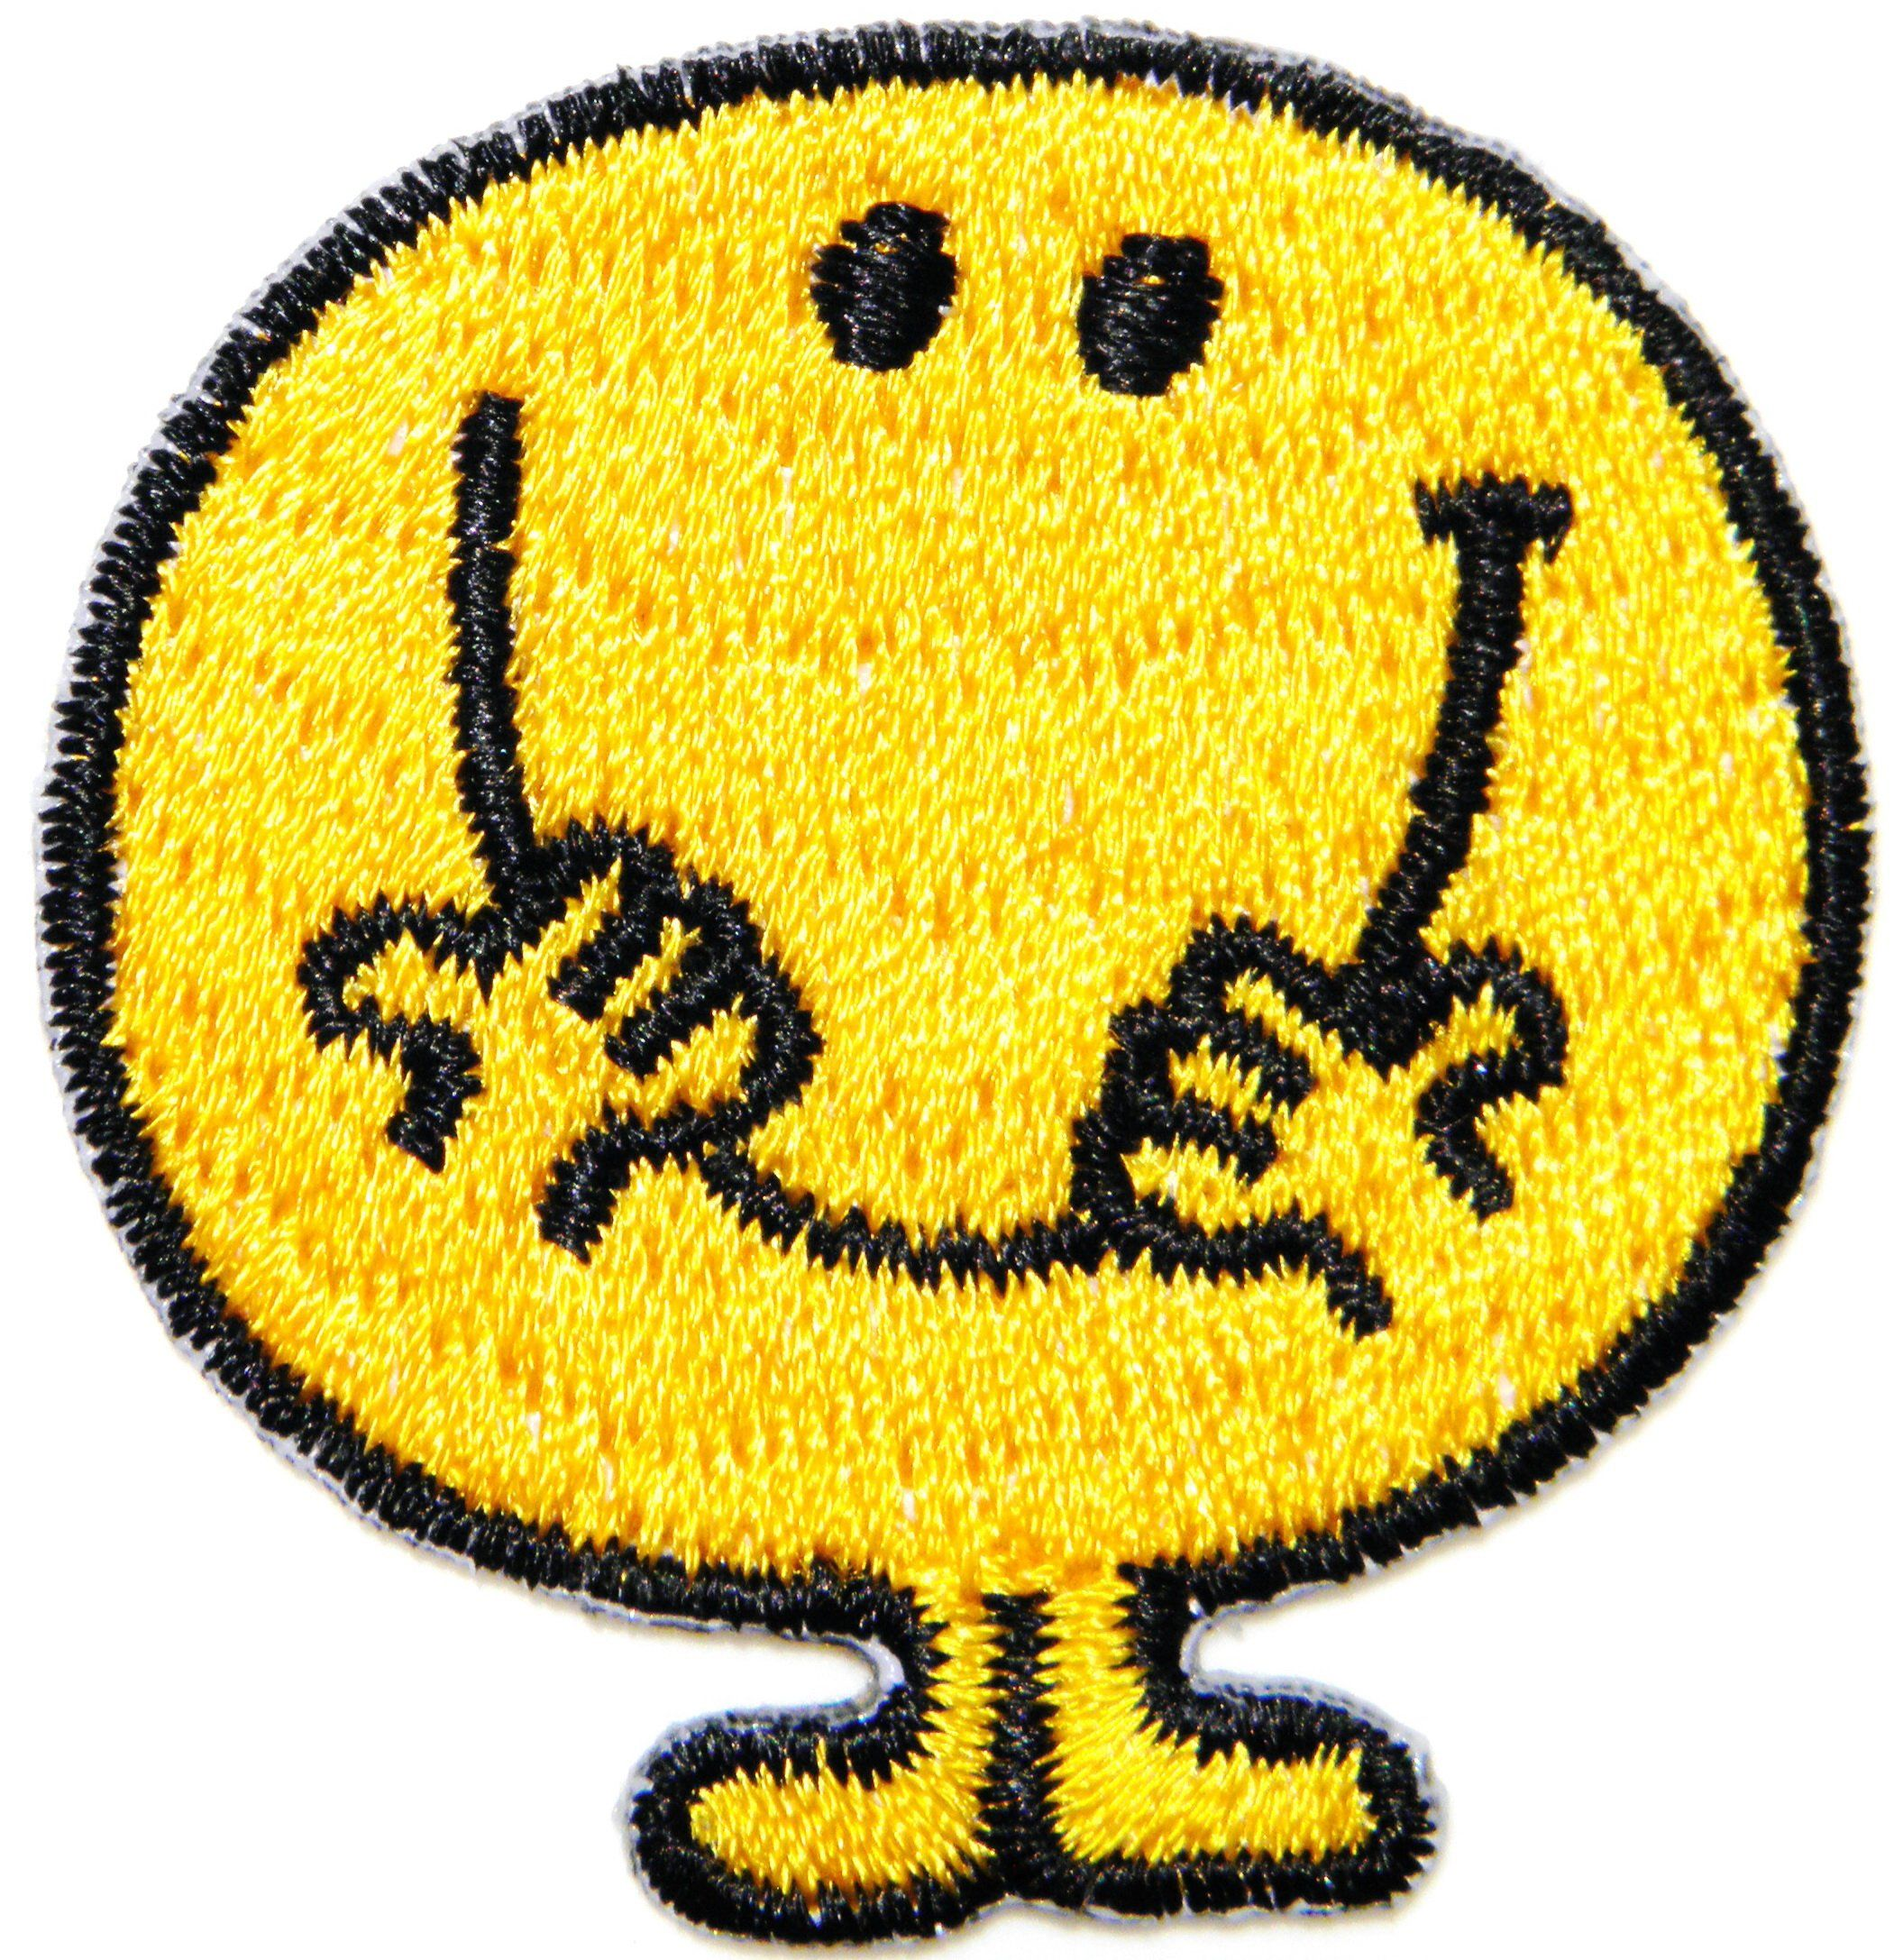 Iron on Patch Little Miss Mr Men 6cm x 6cm Sew Applique Embroidered Cartoon